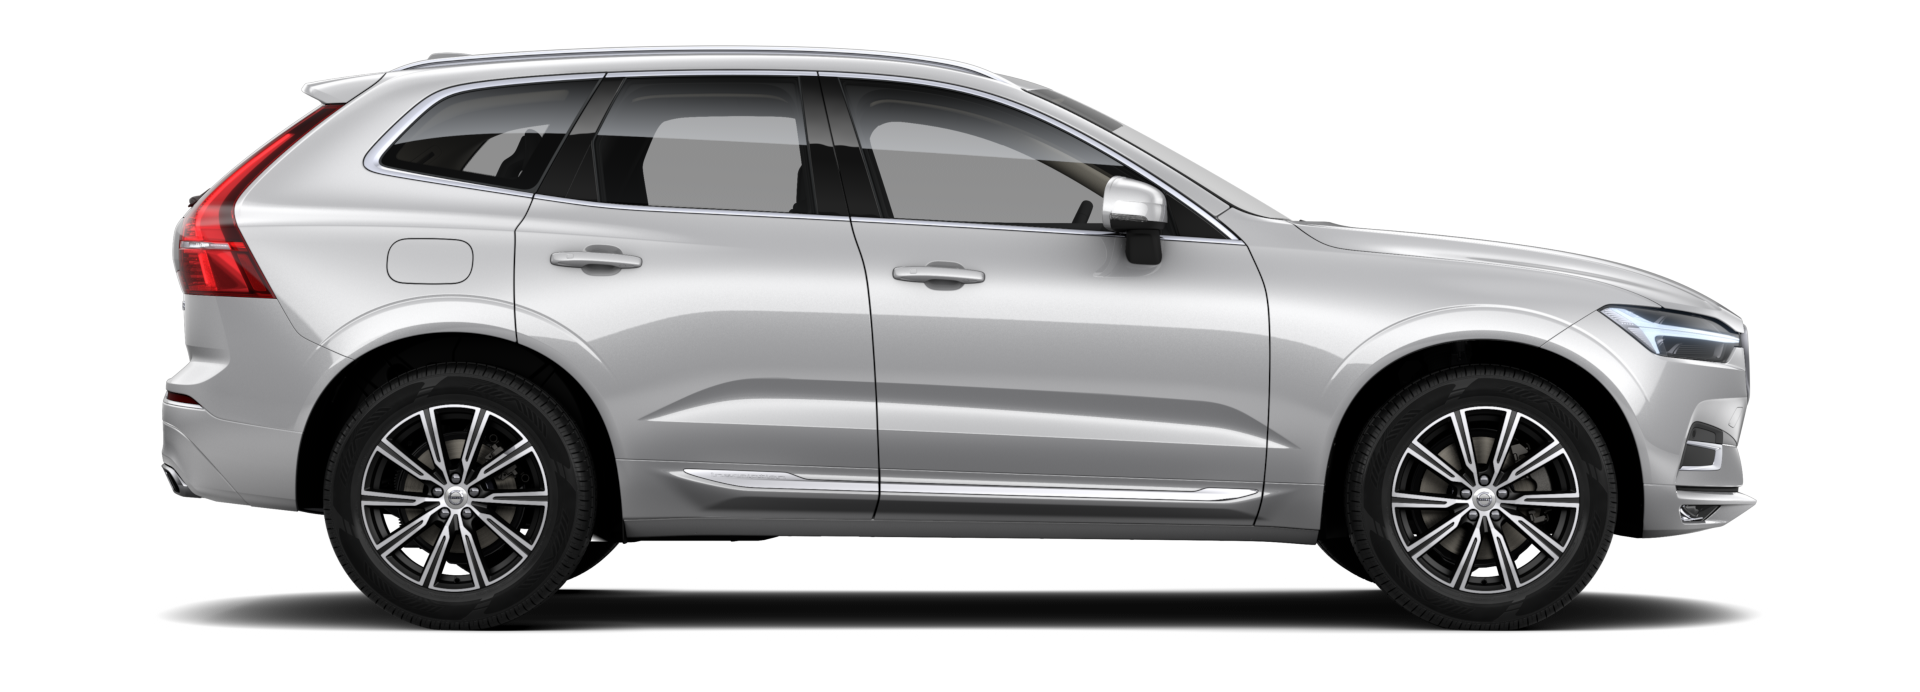 2018 Volvo Xc60 Model Overview Lovering Volvo Nashua